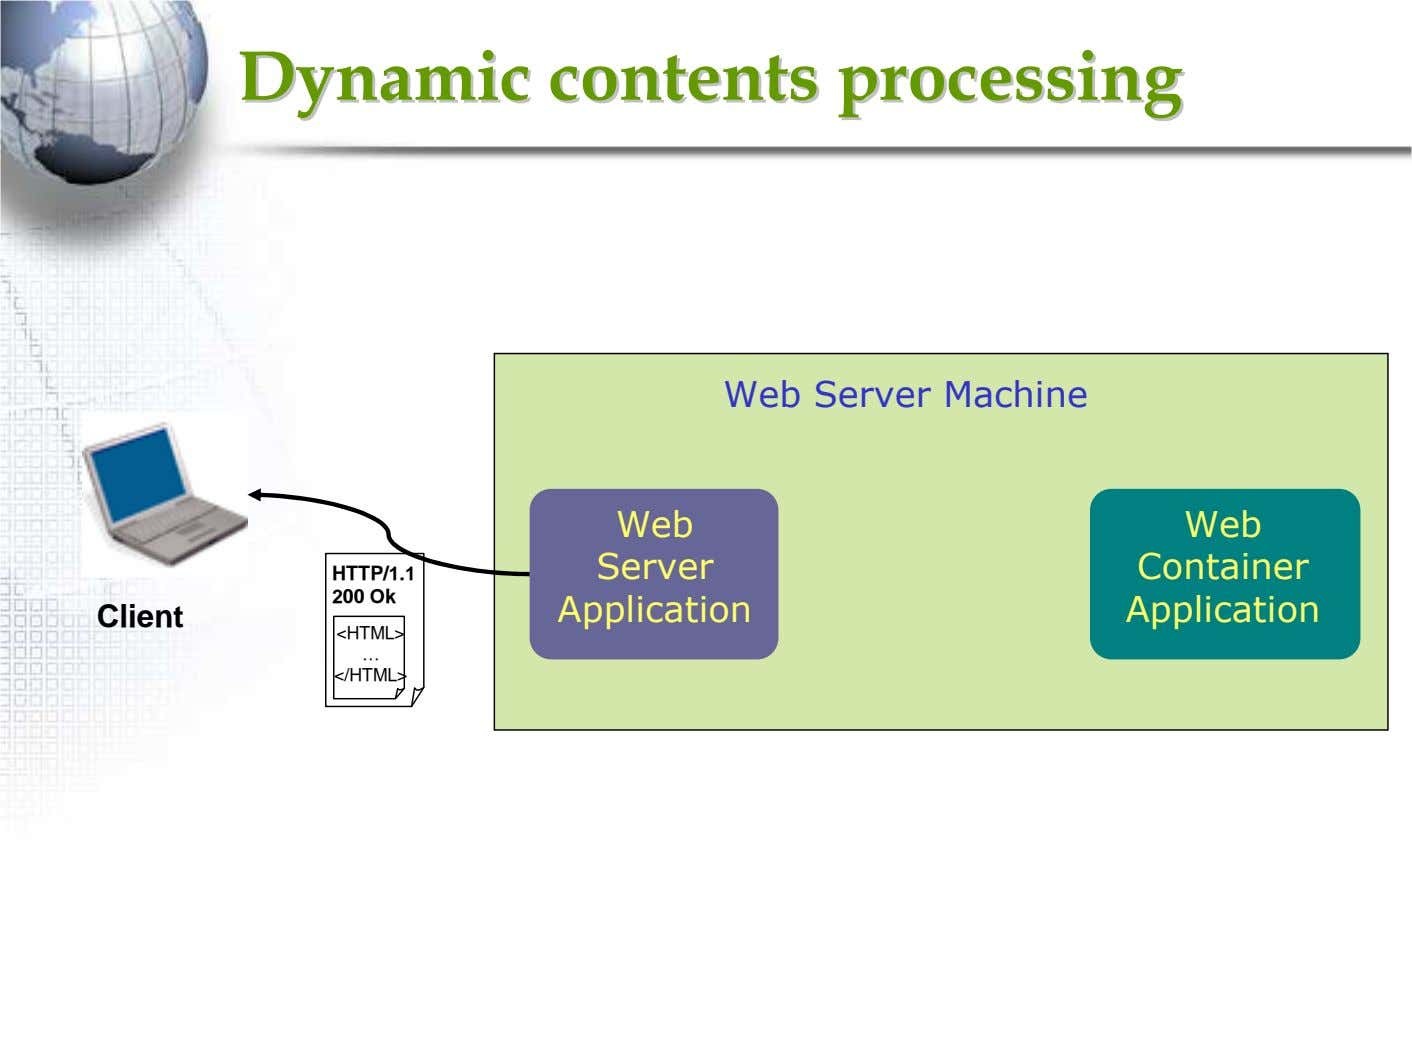 DynamicDynamic contentscontents processingprocessing Web Server Machine Web Web Server Container HTTP/1.1 200 Ok